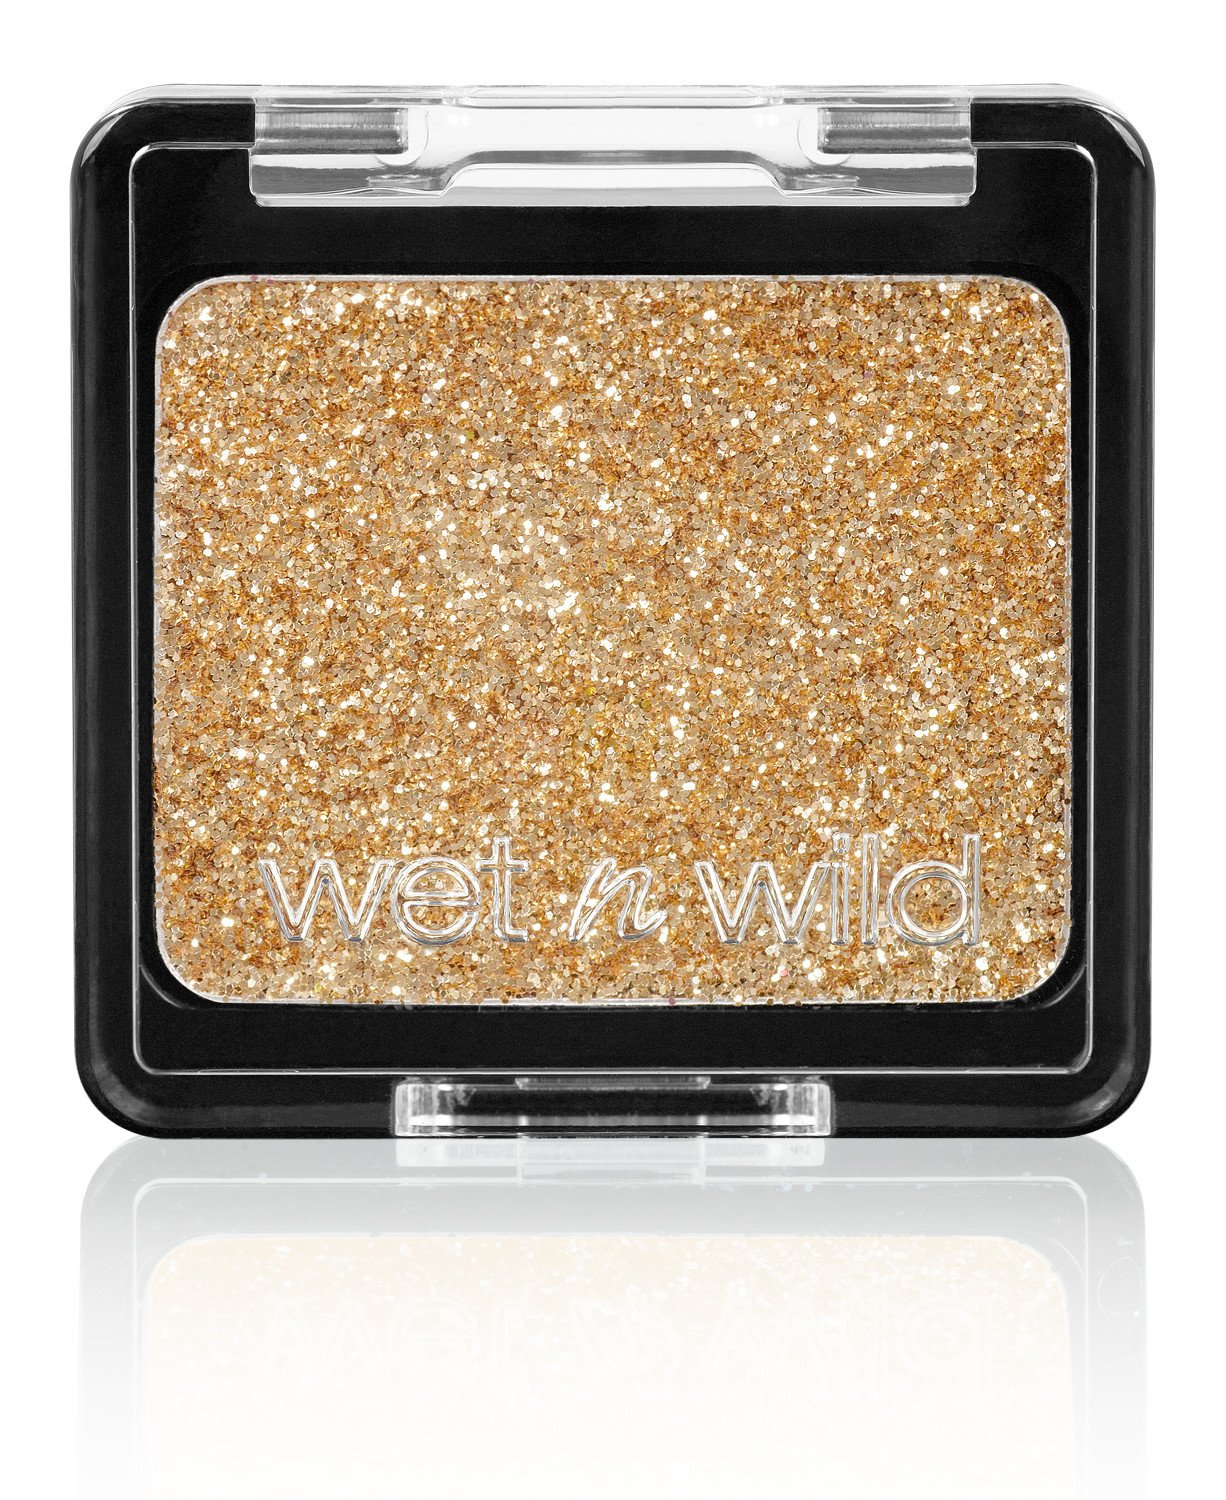 Wet n Wild C352B Color icon glitter single, 0.05 Ounce, Brass Markwins Beauty Products